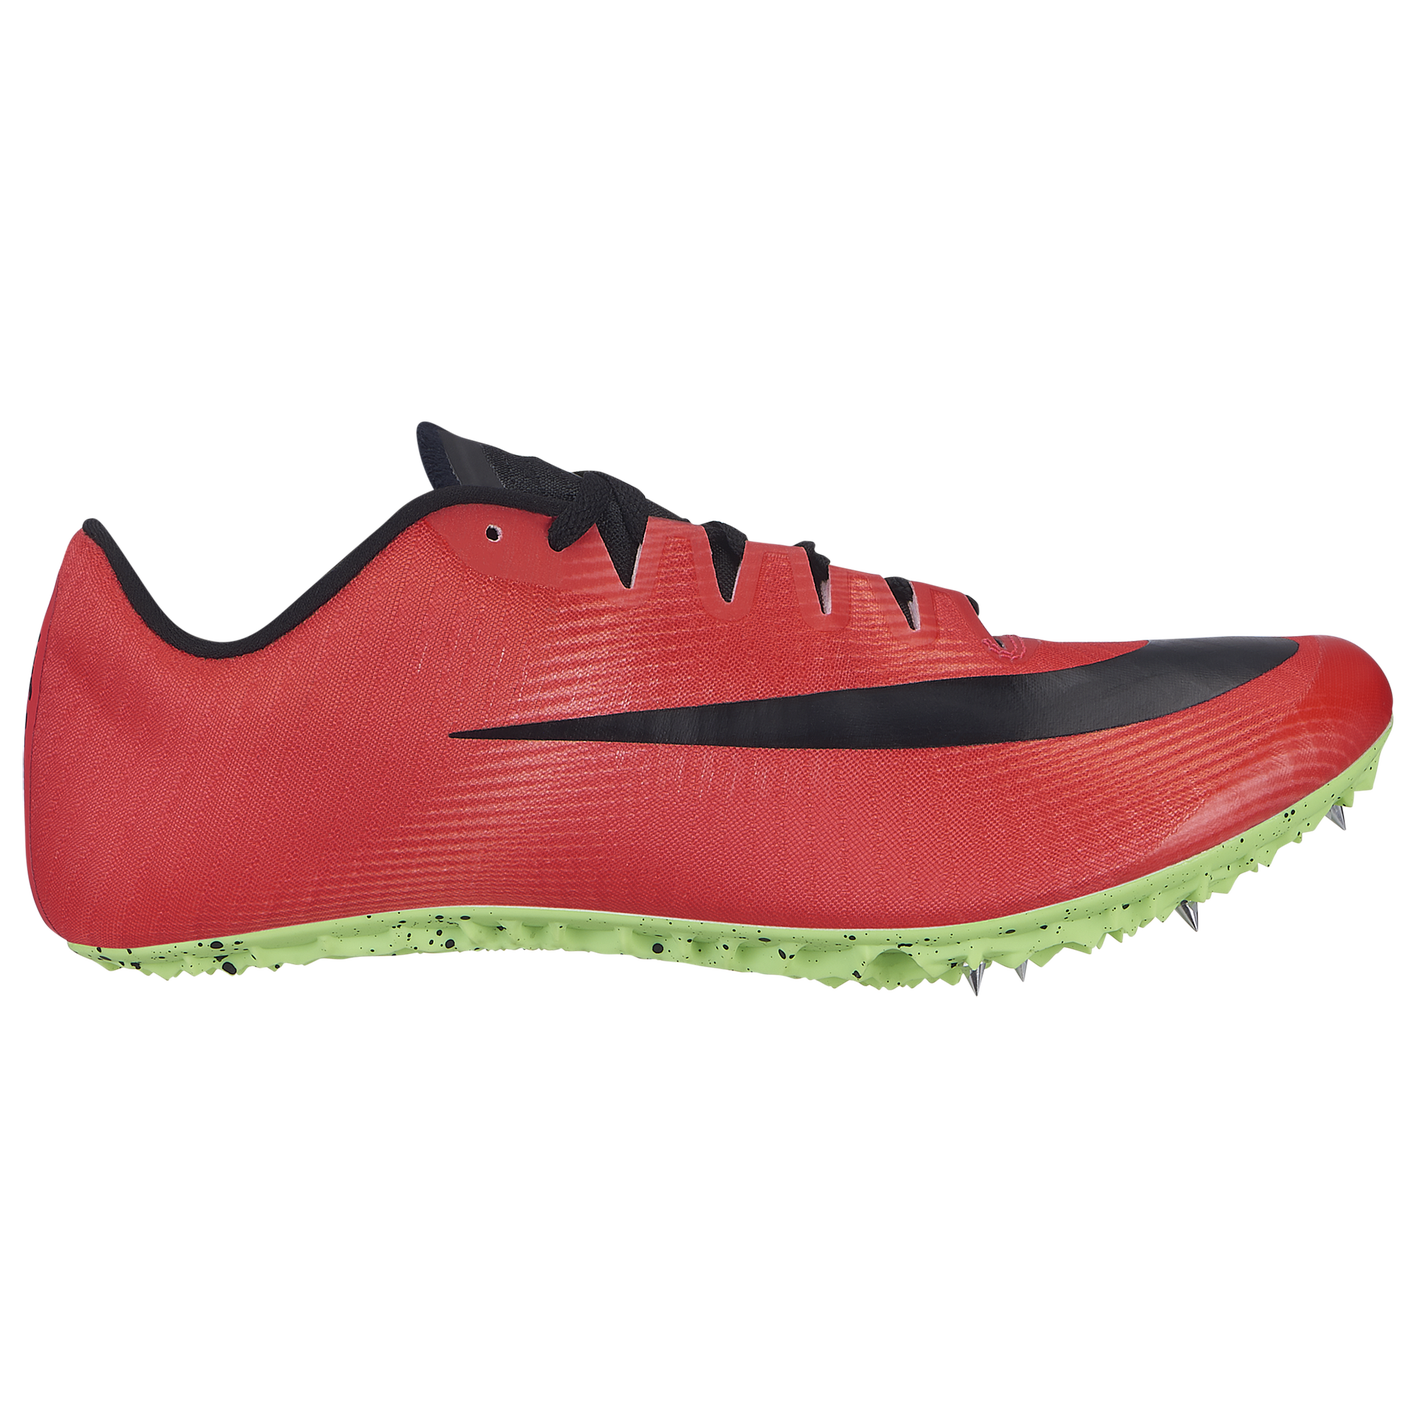 2368779c674a Nike Zoom JA Fly 3 - Men's - Track & Field - Shoes - Red Orbit/Black/Flash  Crimson/Lime Blast